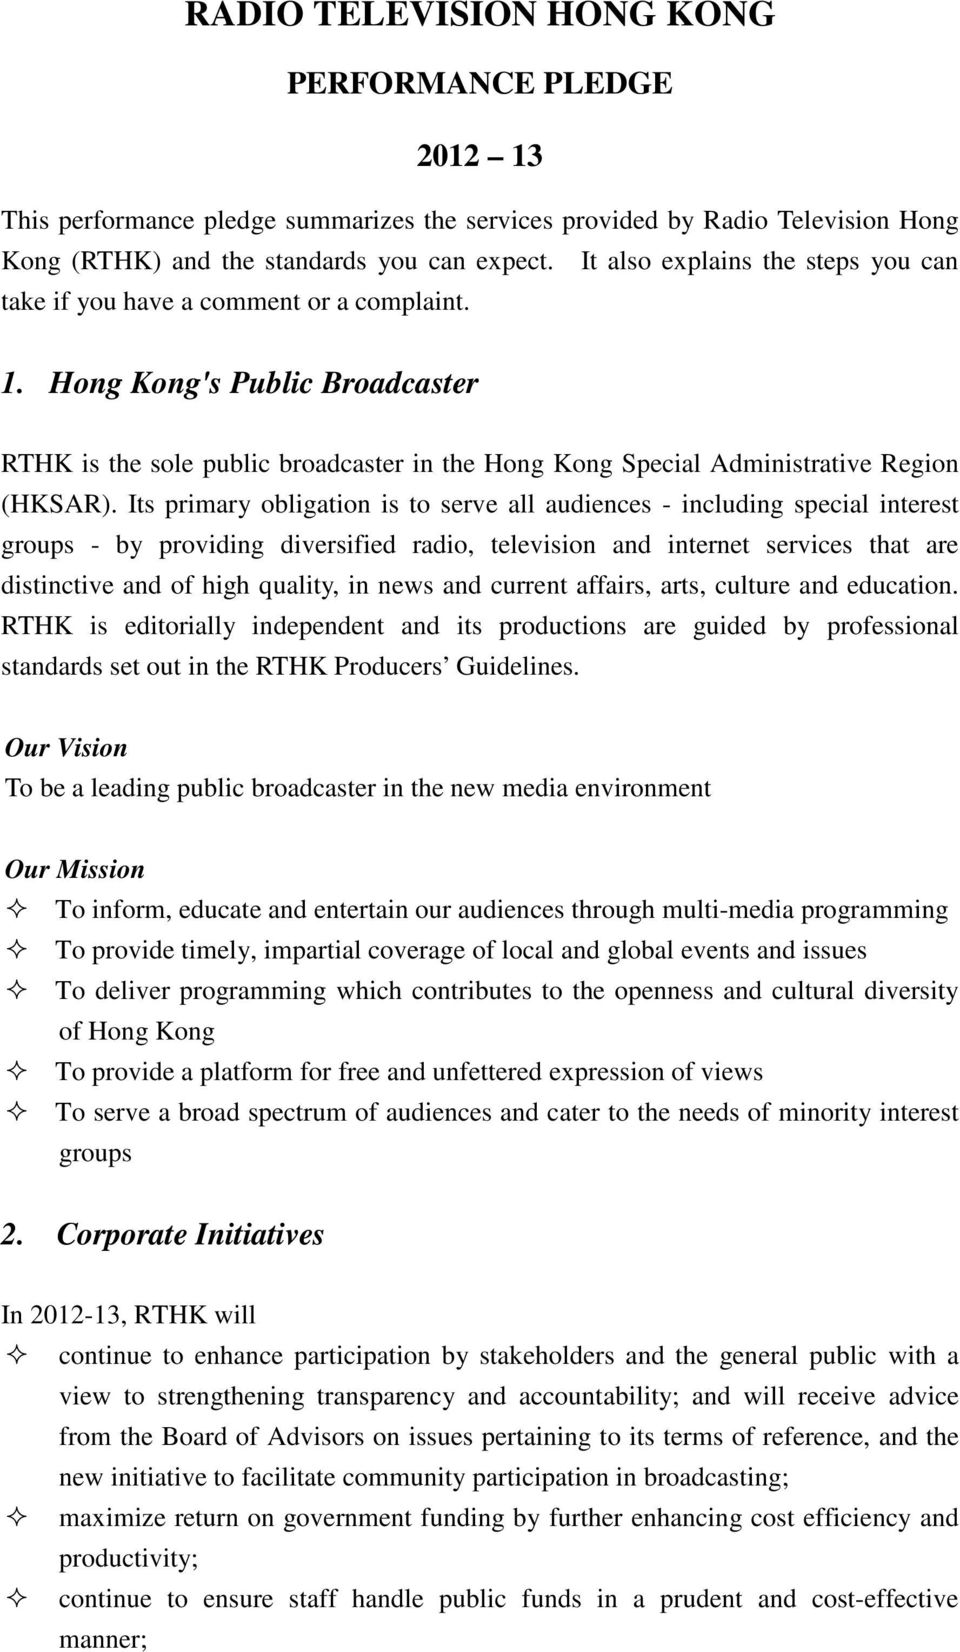 Hong Kong's Public Broadcaster RTHK is the sole public broadcaster in the Hong Kong Special Administrative Region (HKSAR).